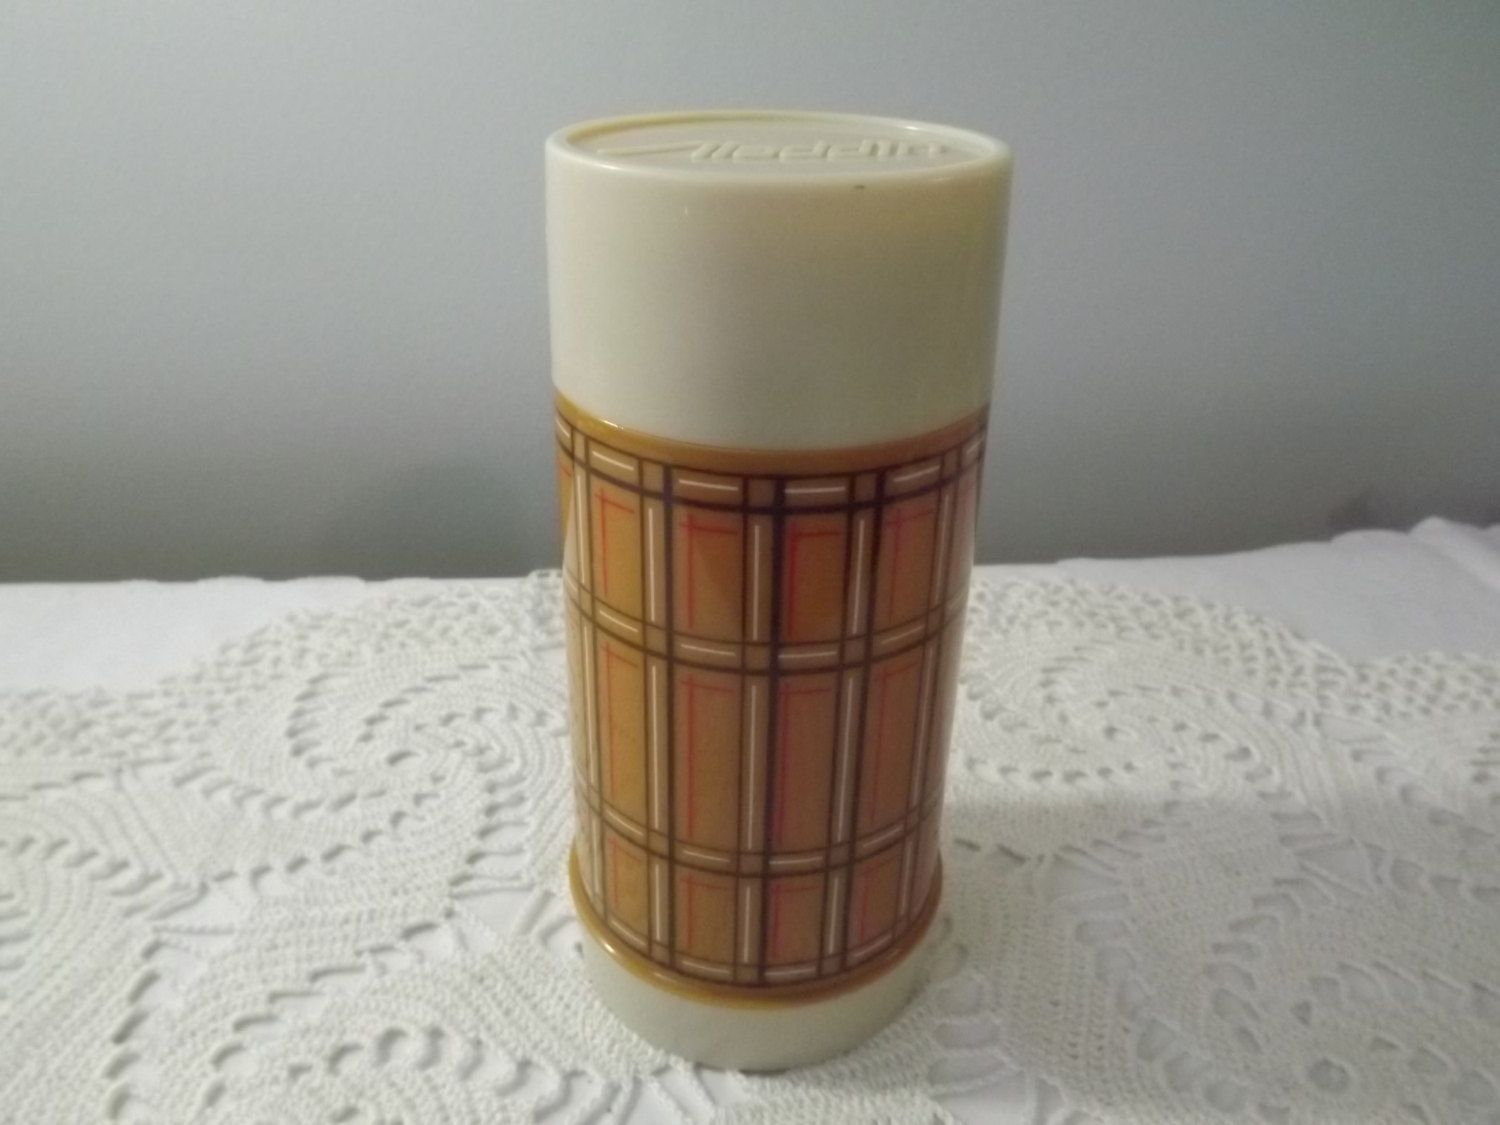 vintage aladdin best buy thermos vacuum bottle brown plaid for hot or cold beverages